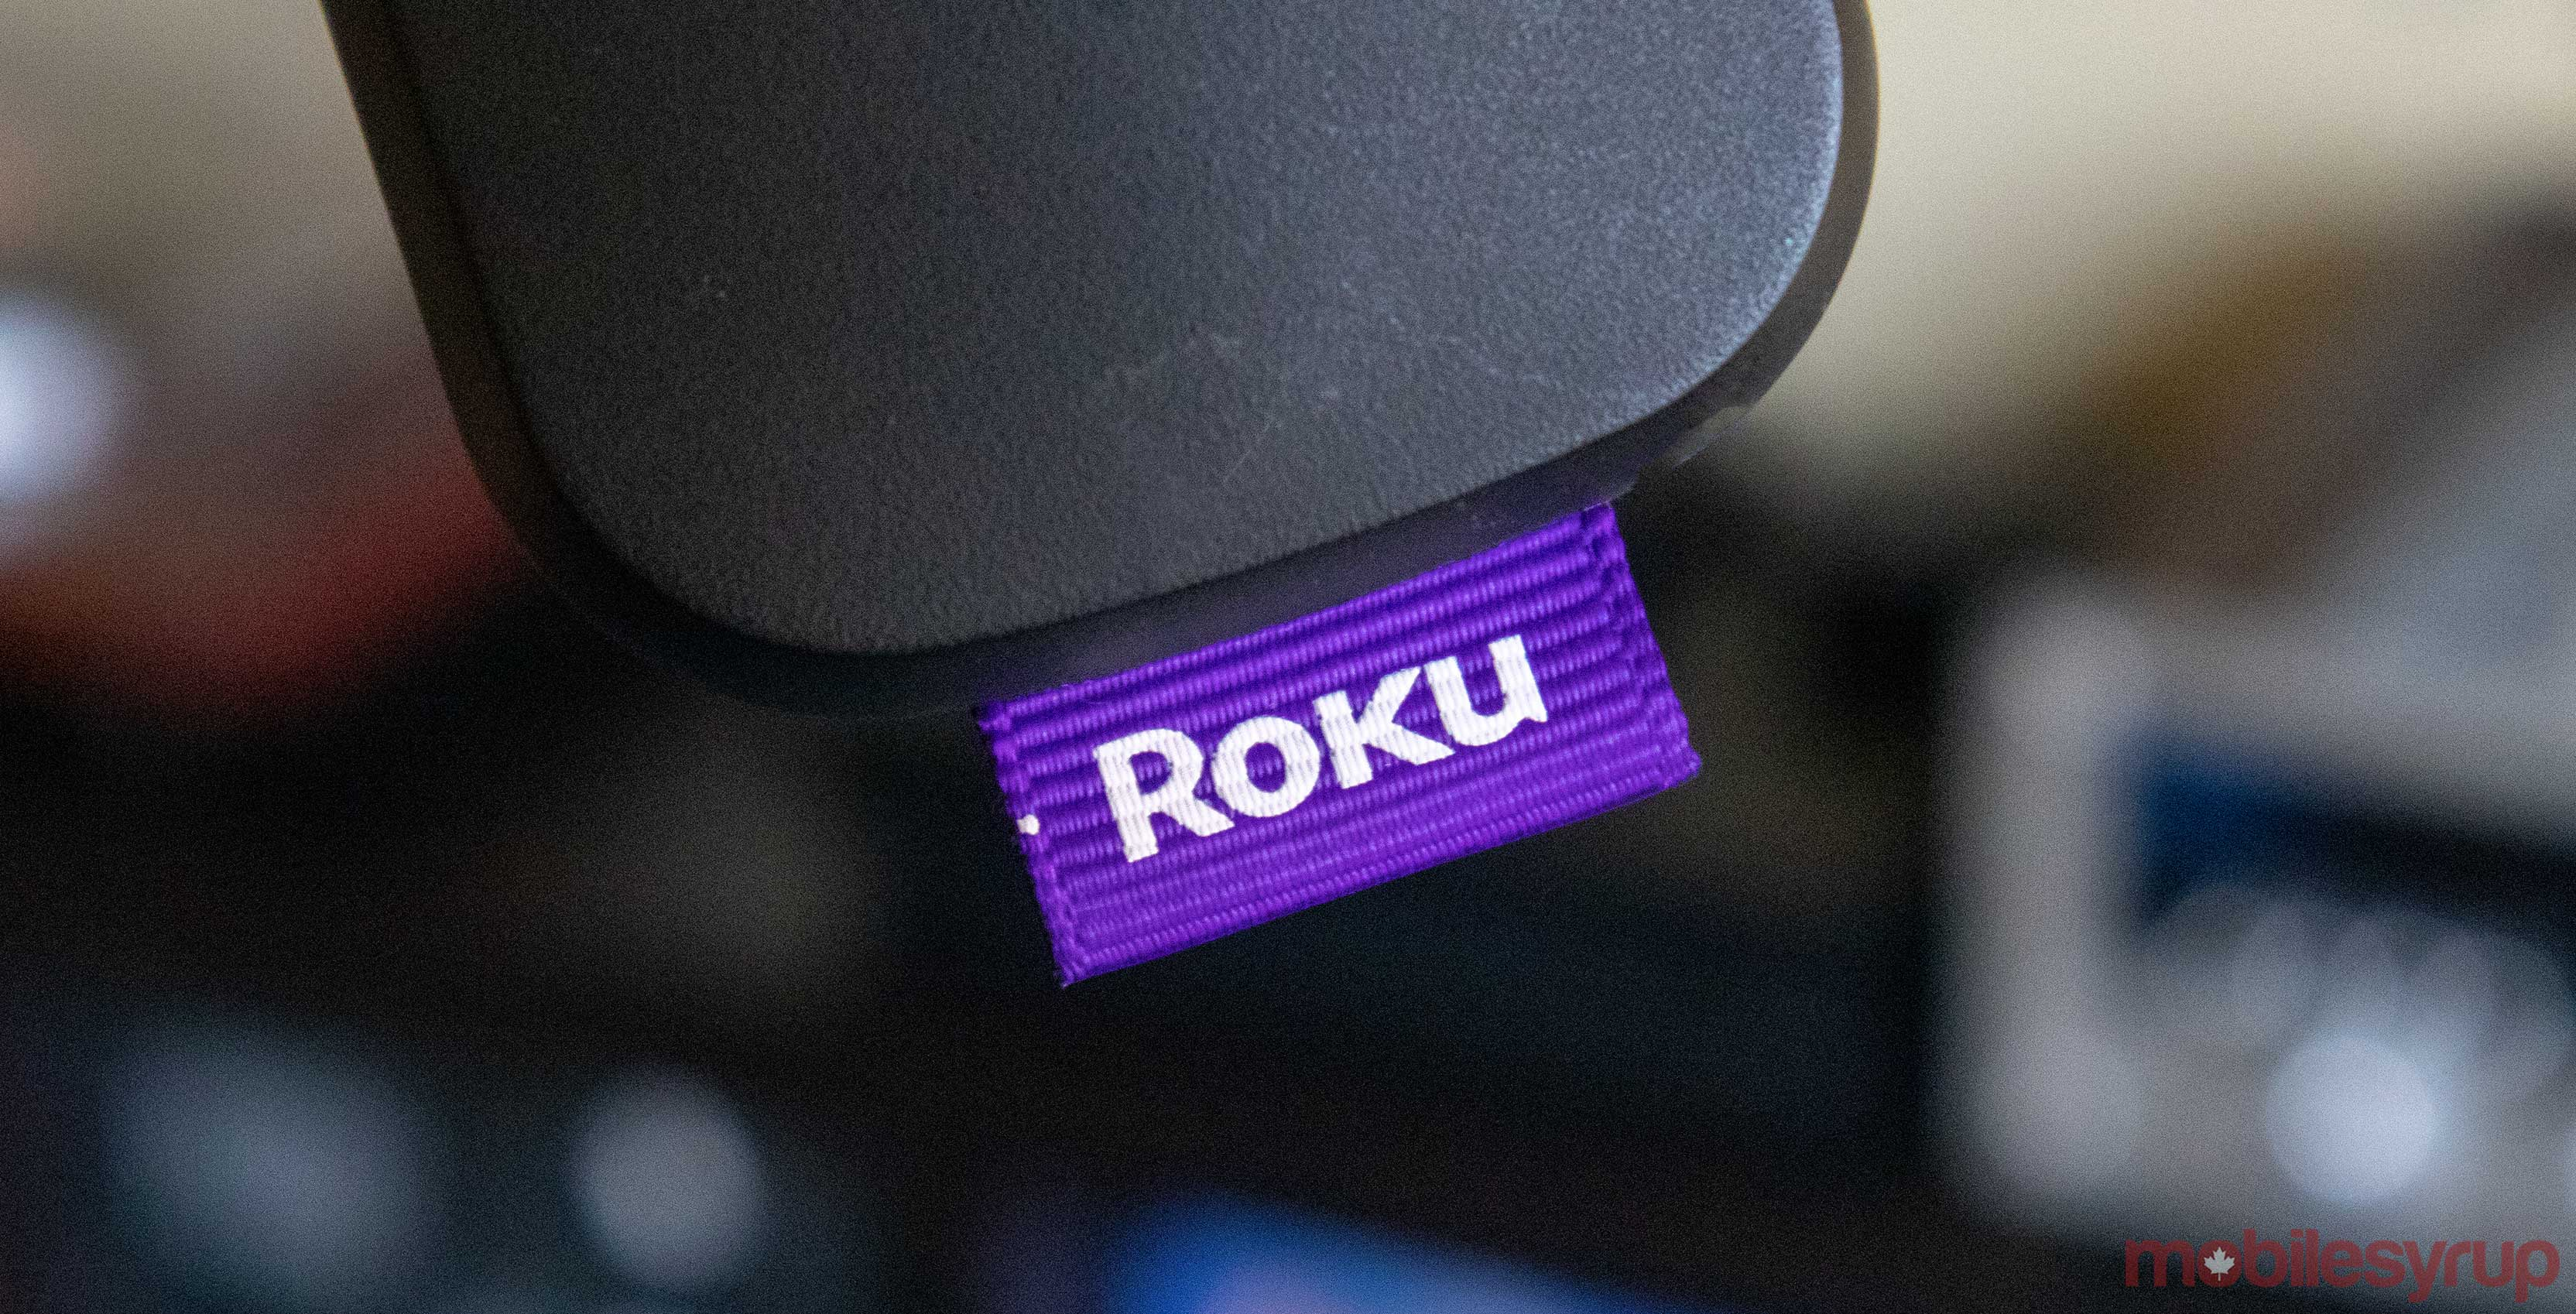 e620fa2d9e8 Roku is going to be offering a small handful of deals on Roku devices for Black  Friday.